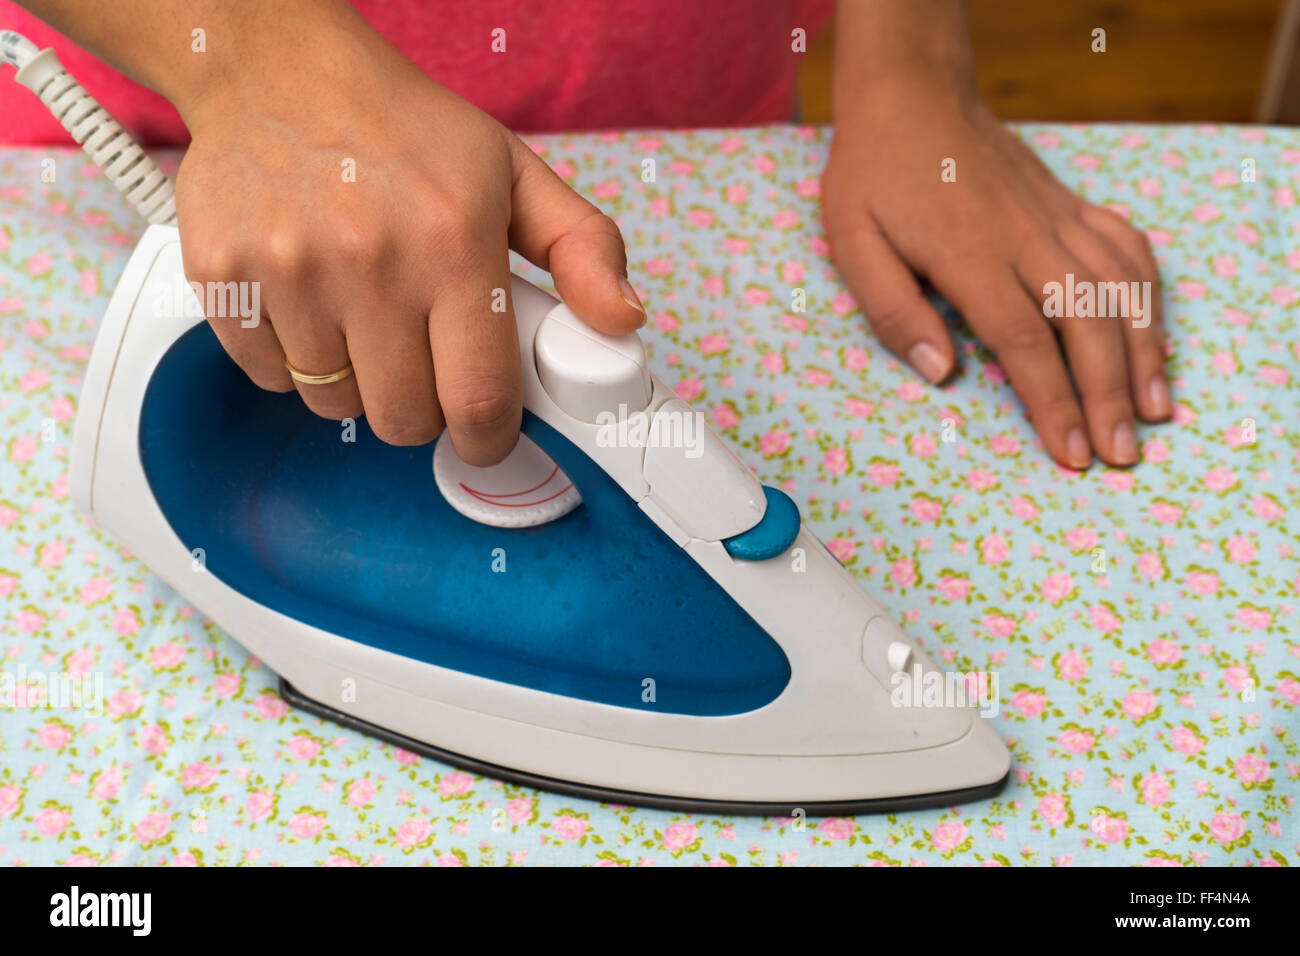 Woman ironing sheet with flowers - Stock Image